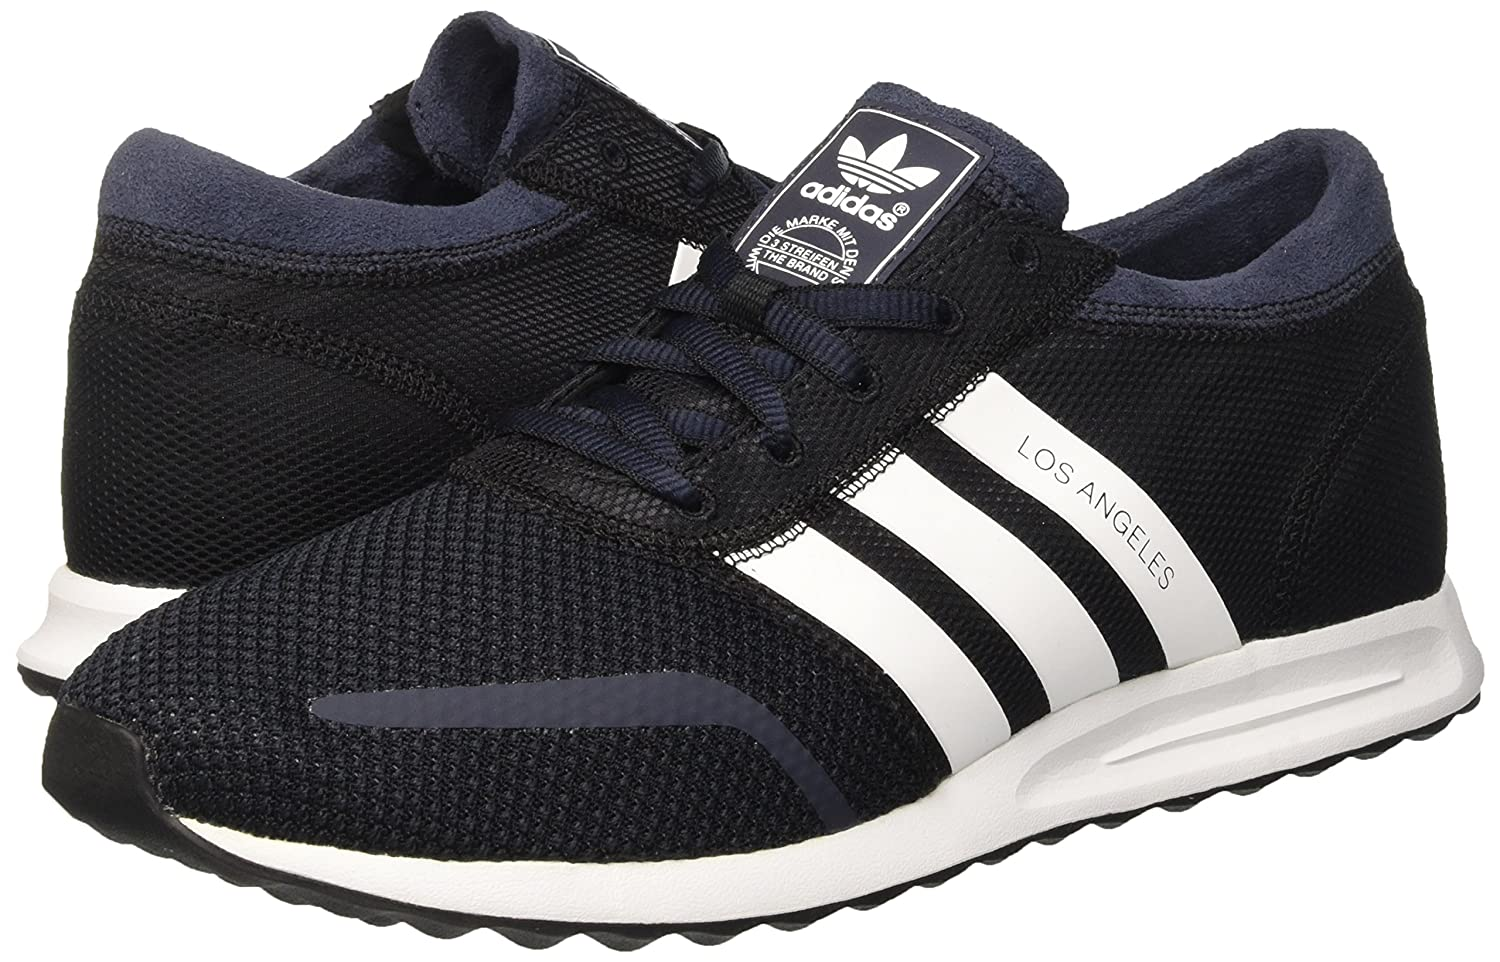 best sneakers 3fbe6 79e3d adidas Originals Mens Los Angeles Black, White and Blue Mesh Sneakers - 7  UK Buy Online at Low Prices in India - Amazon.in